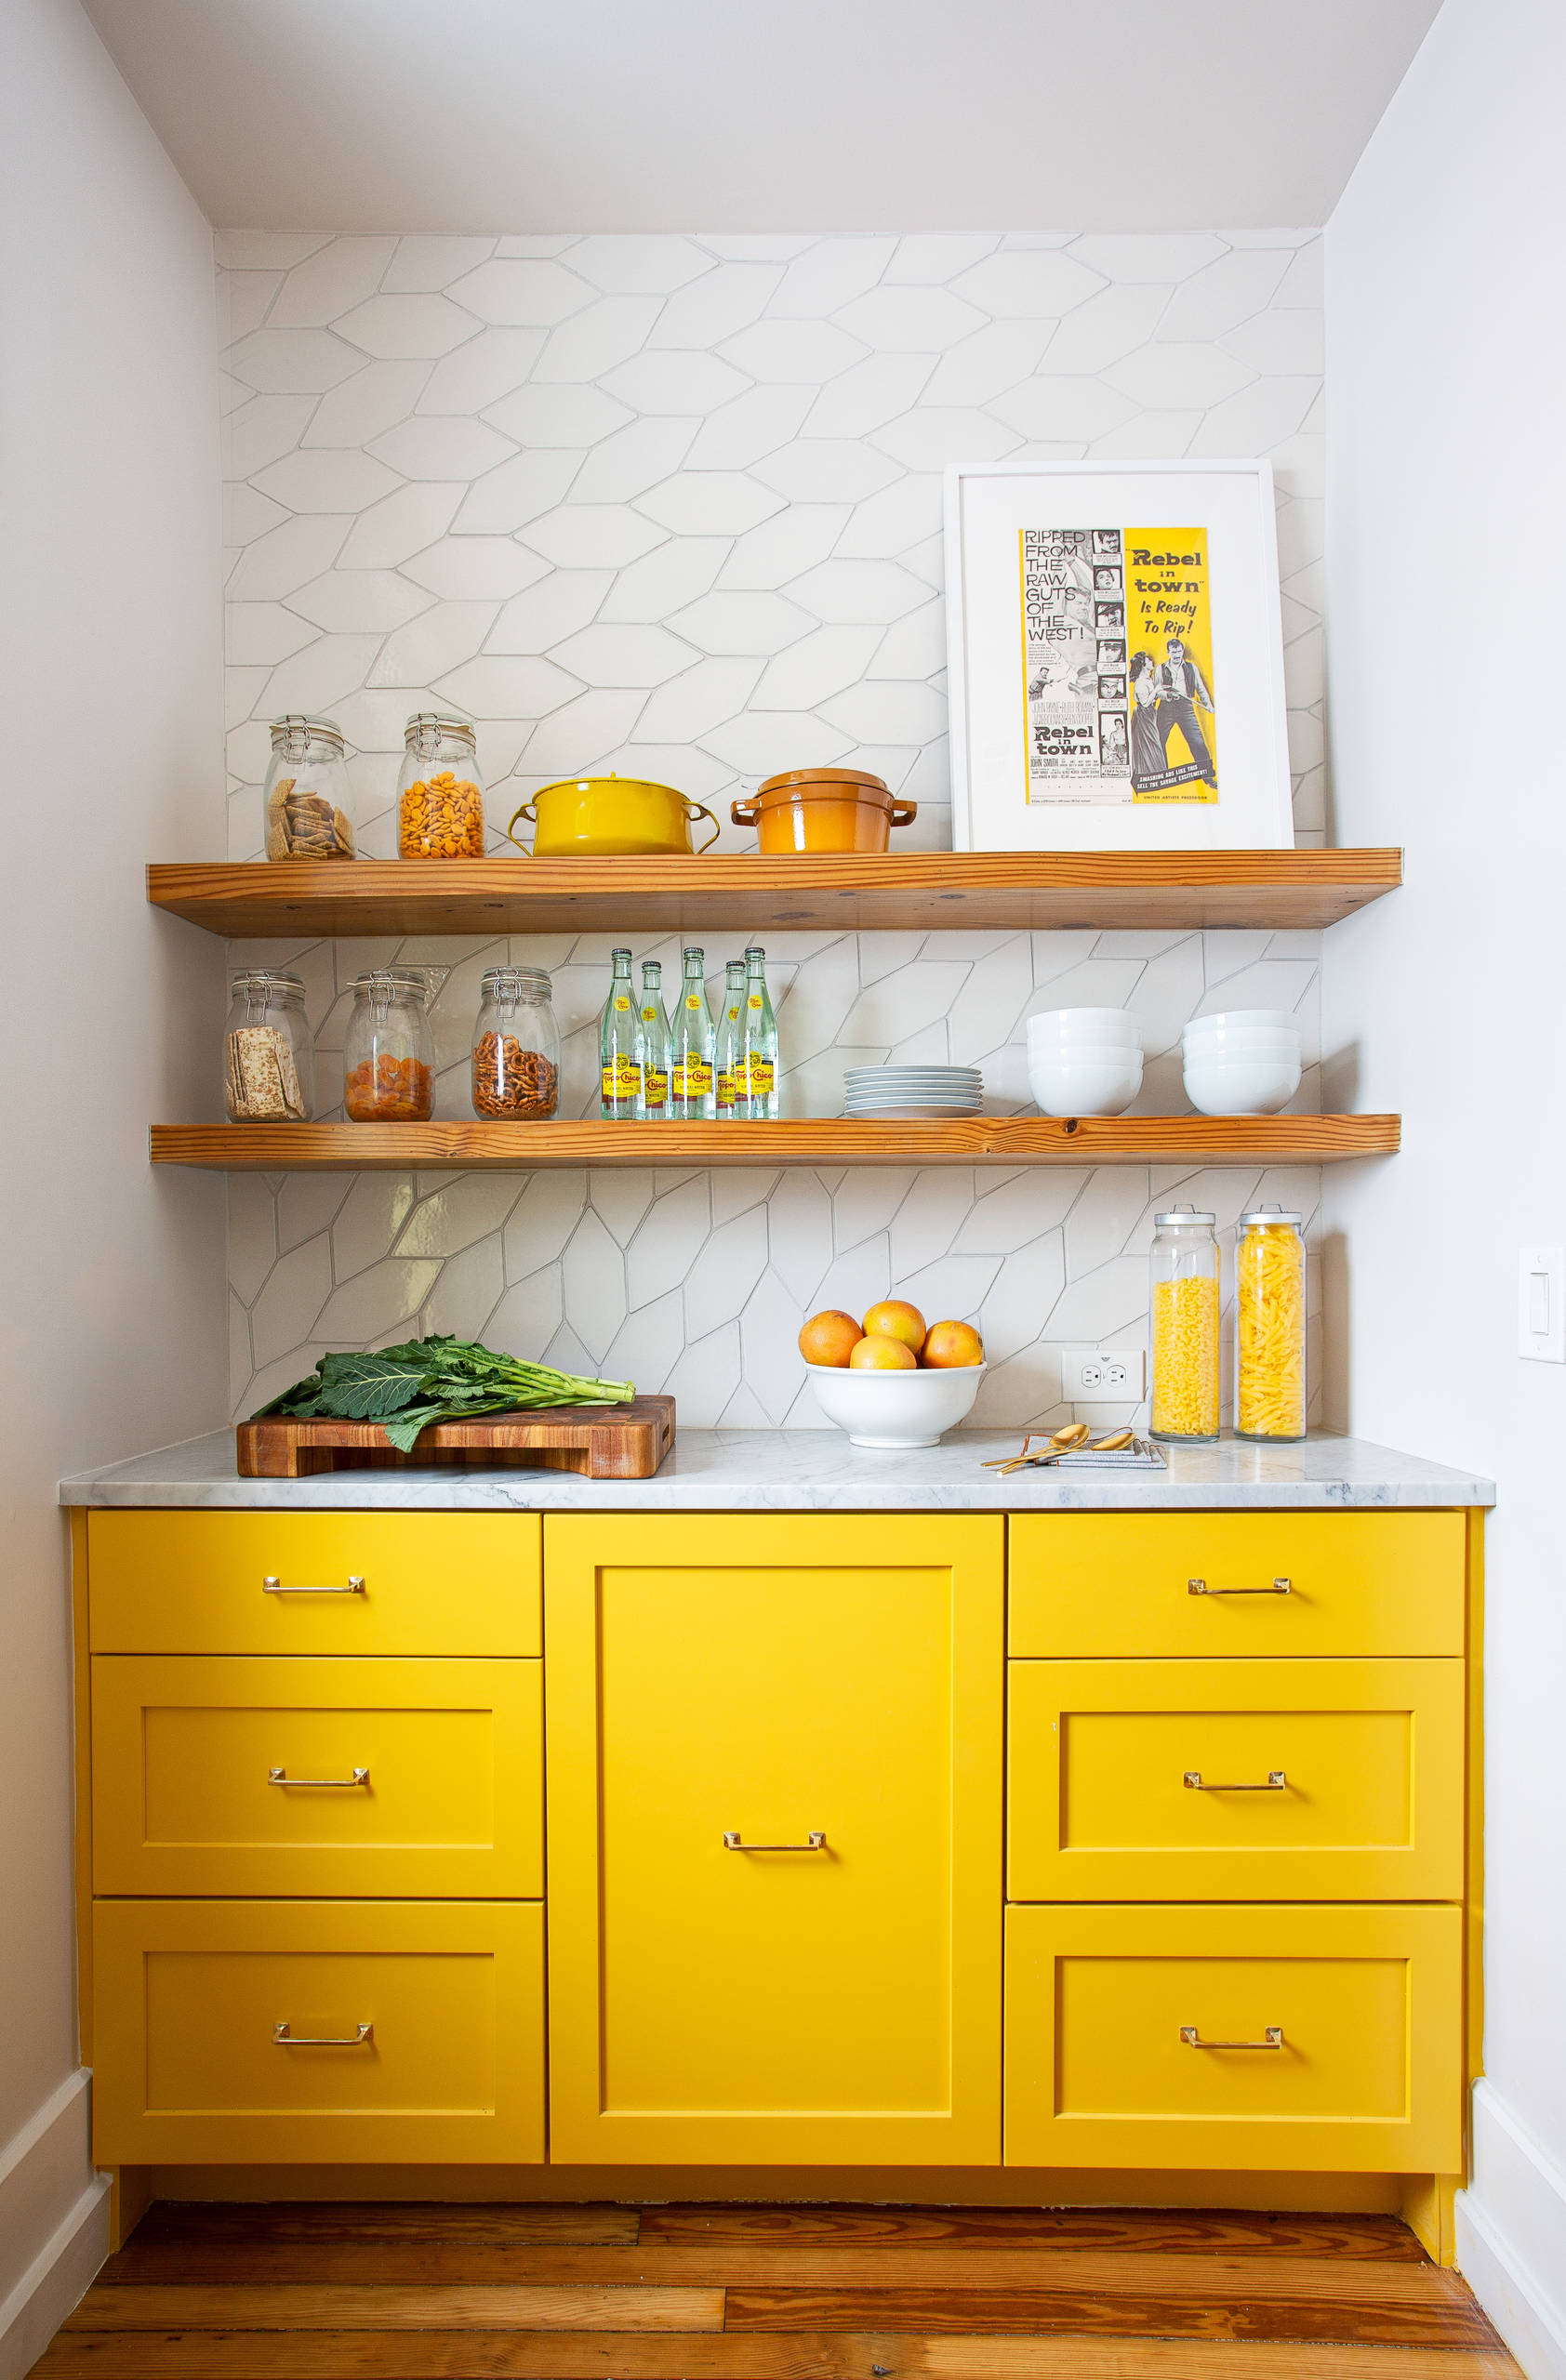 75 Beautiful Kitchen With Yellow Cabinets And Marble Countertops Pictures Ideas December 2020 Houzz